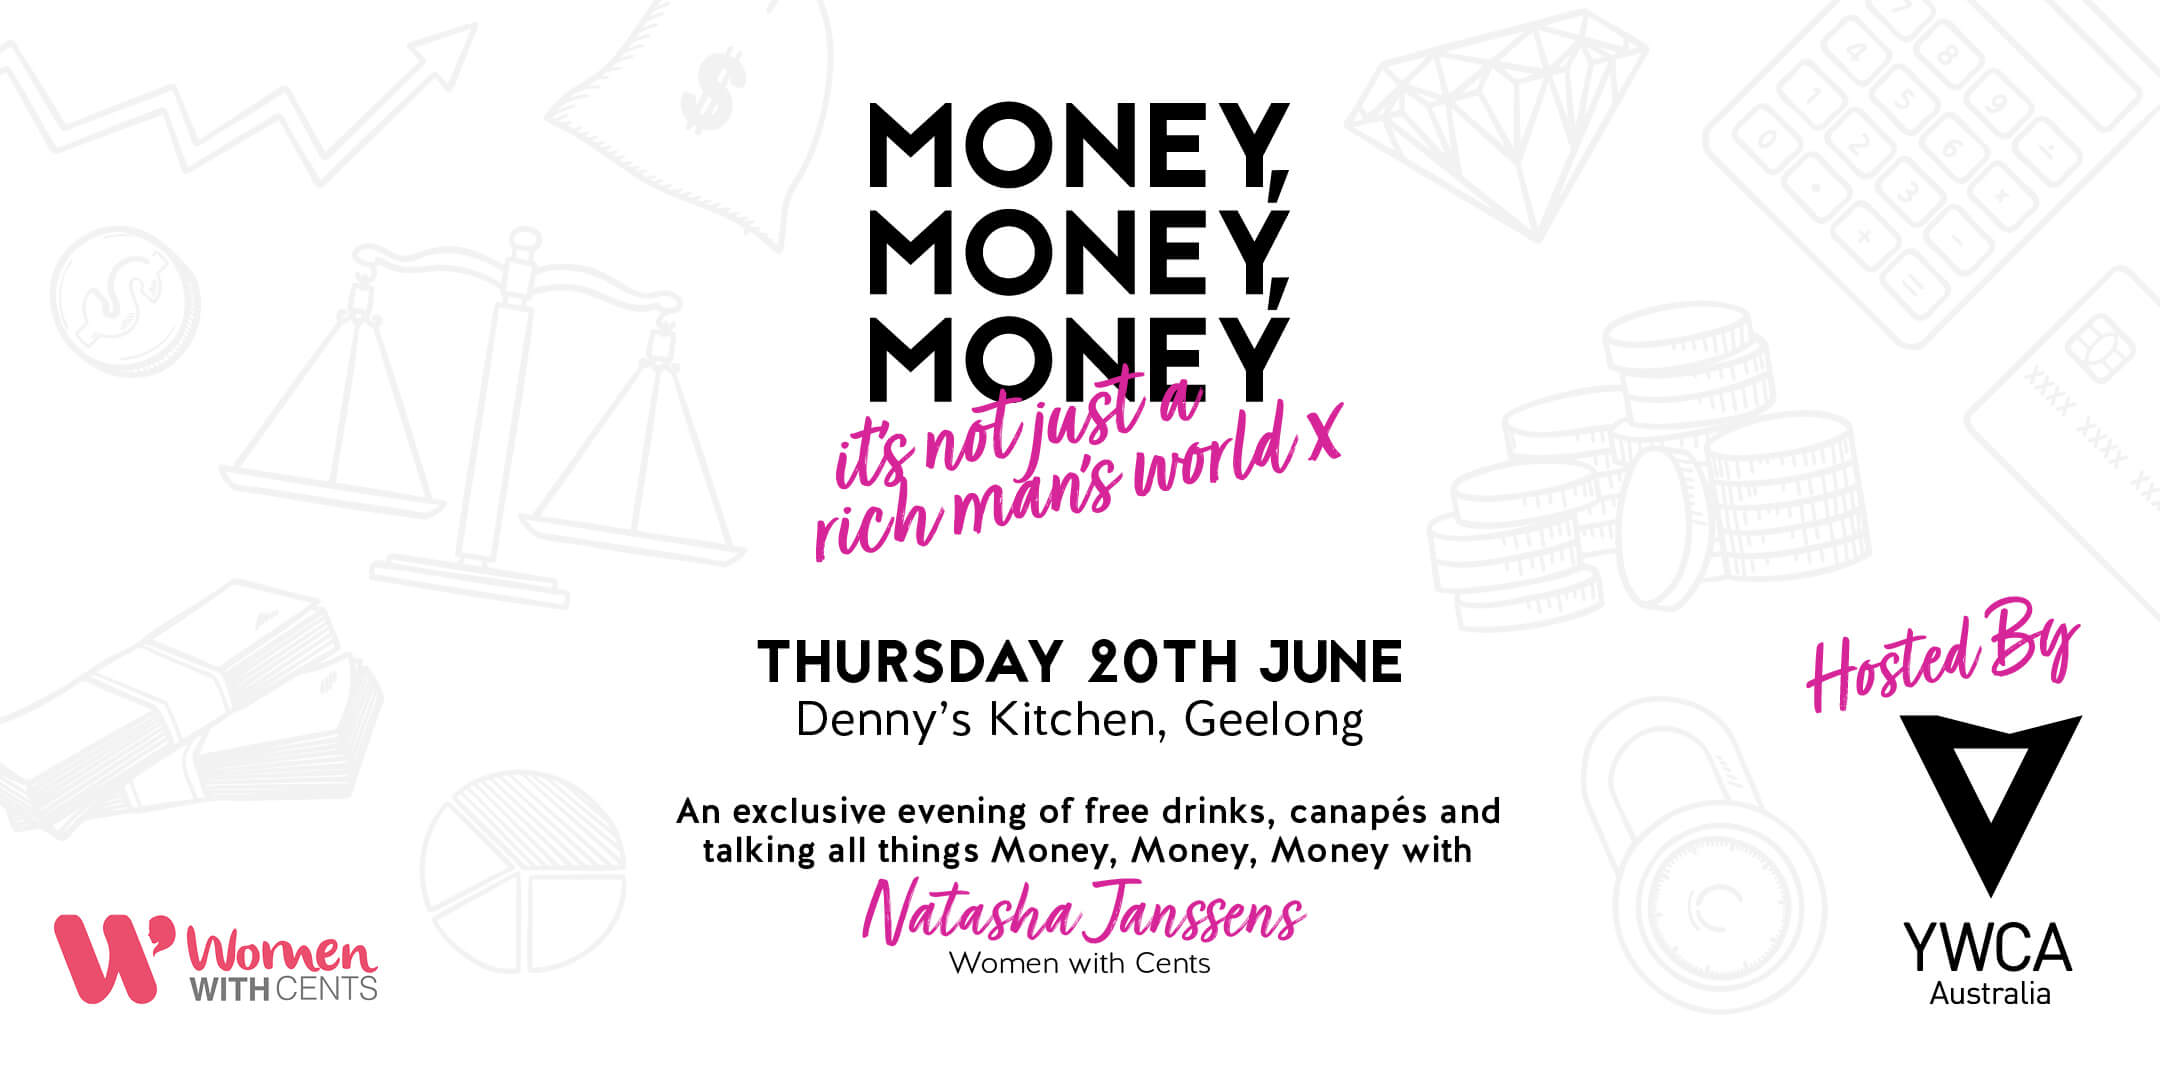 YWCA Event flyer 20th June